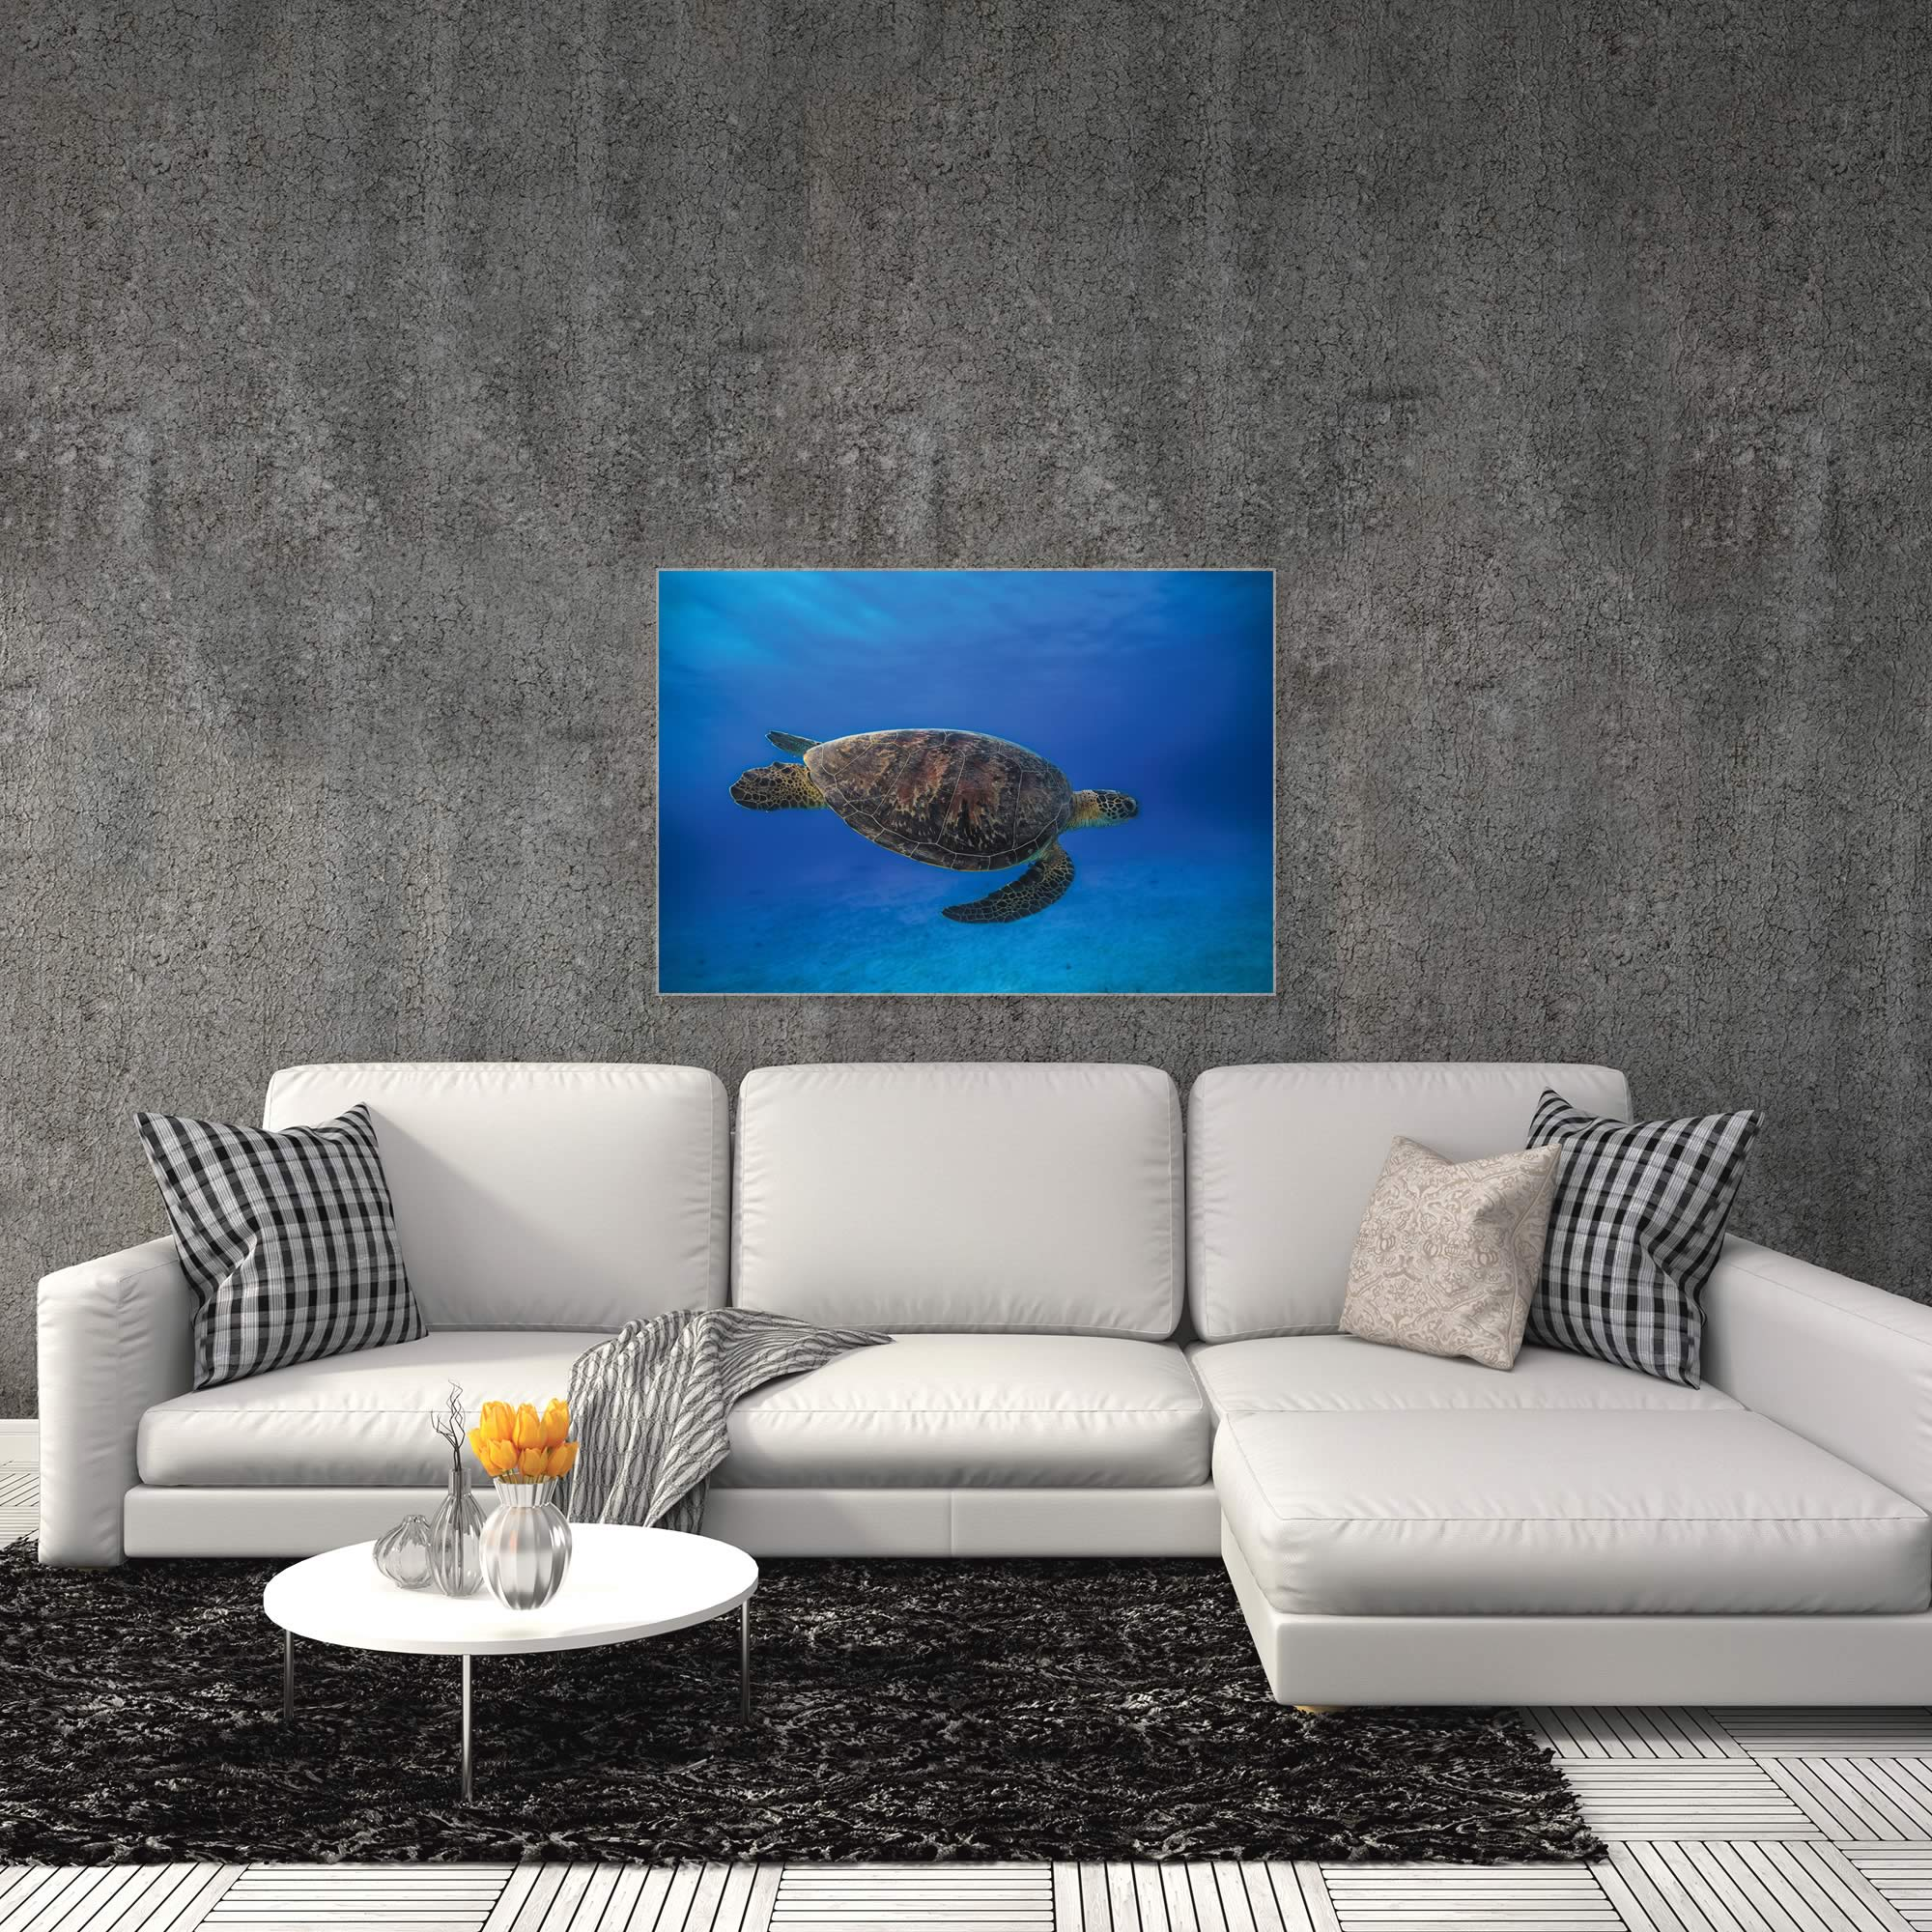 Green Turtle in the Blue by Barathieu Gabriel - Sea Turtle Art on Metal or Acrylic - Alternate View 3